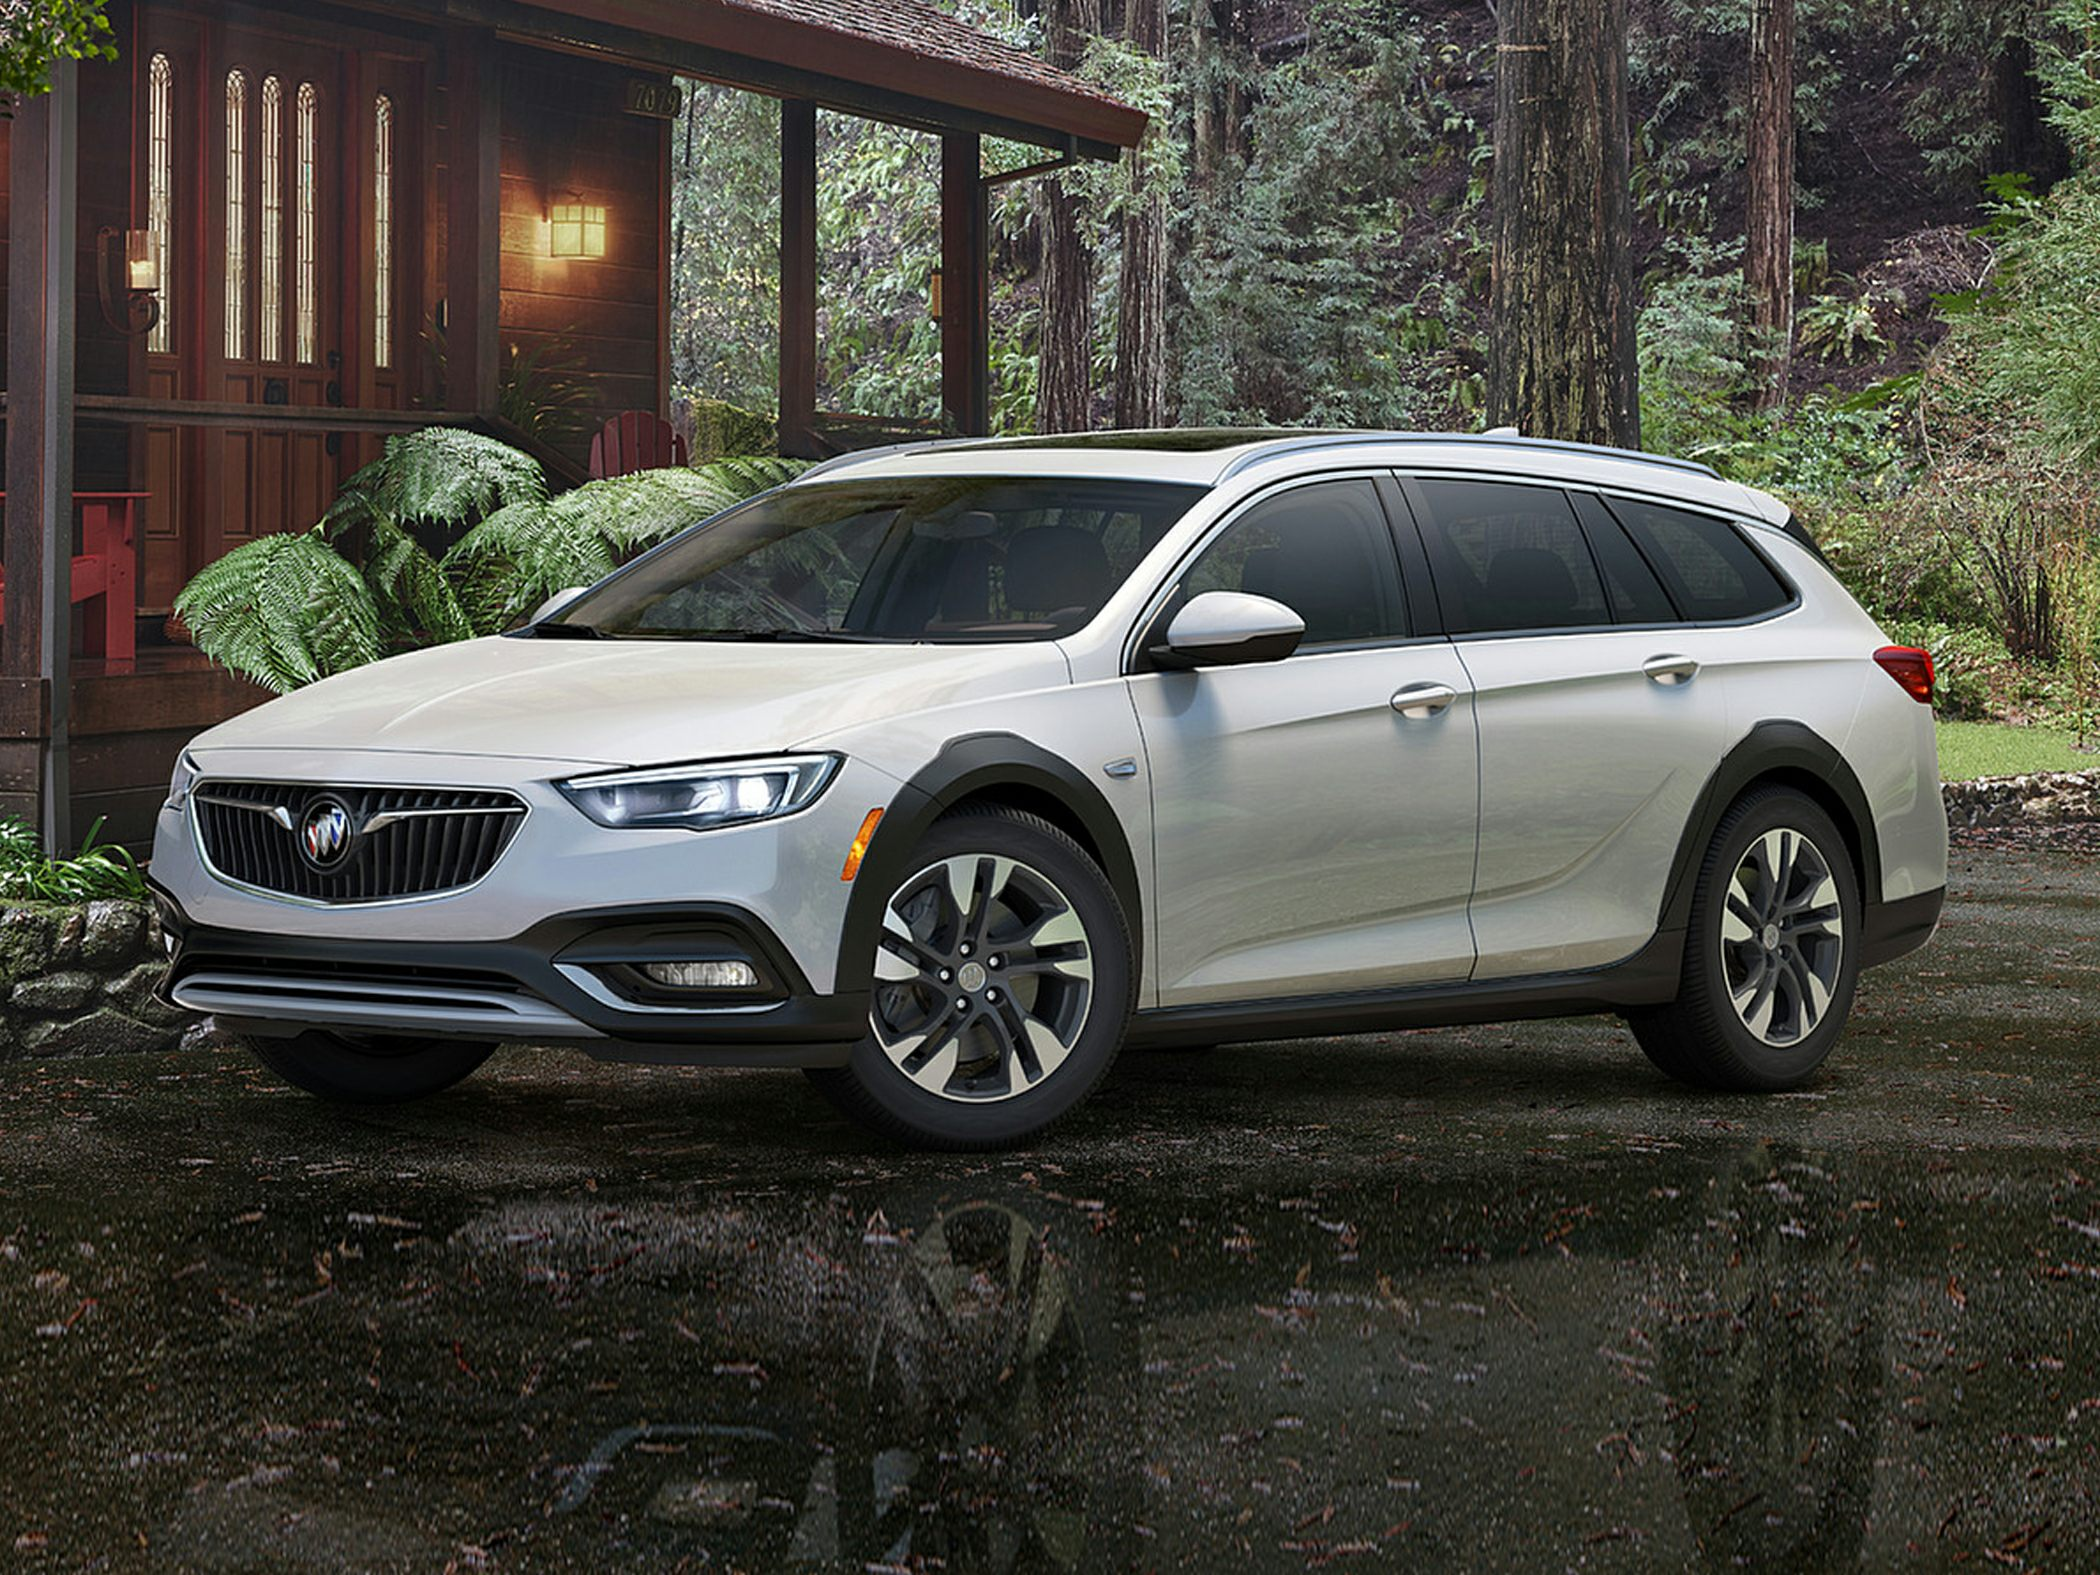 2019 Buick Regal TourX Owners Manual